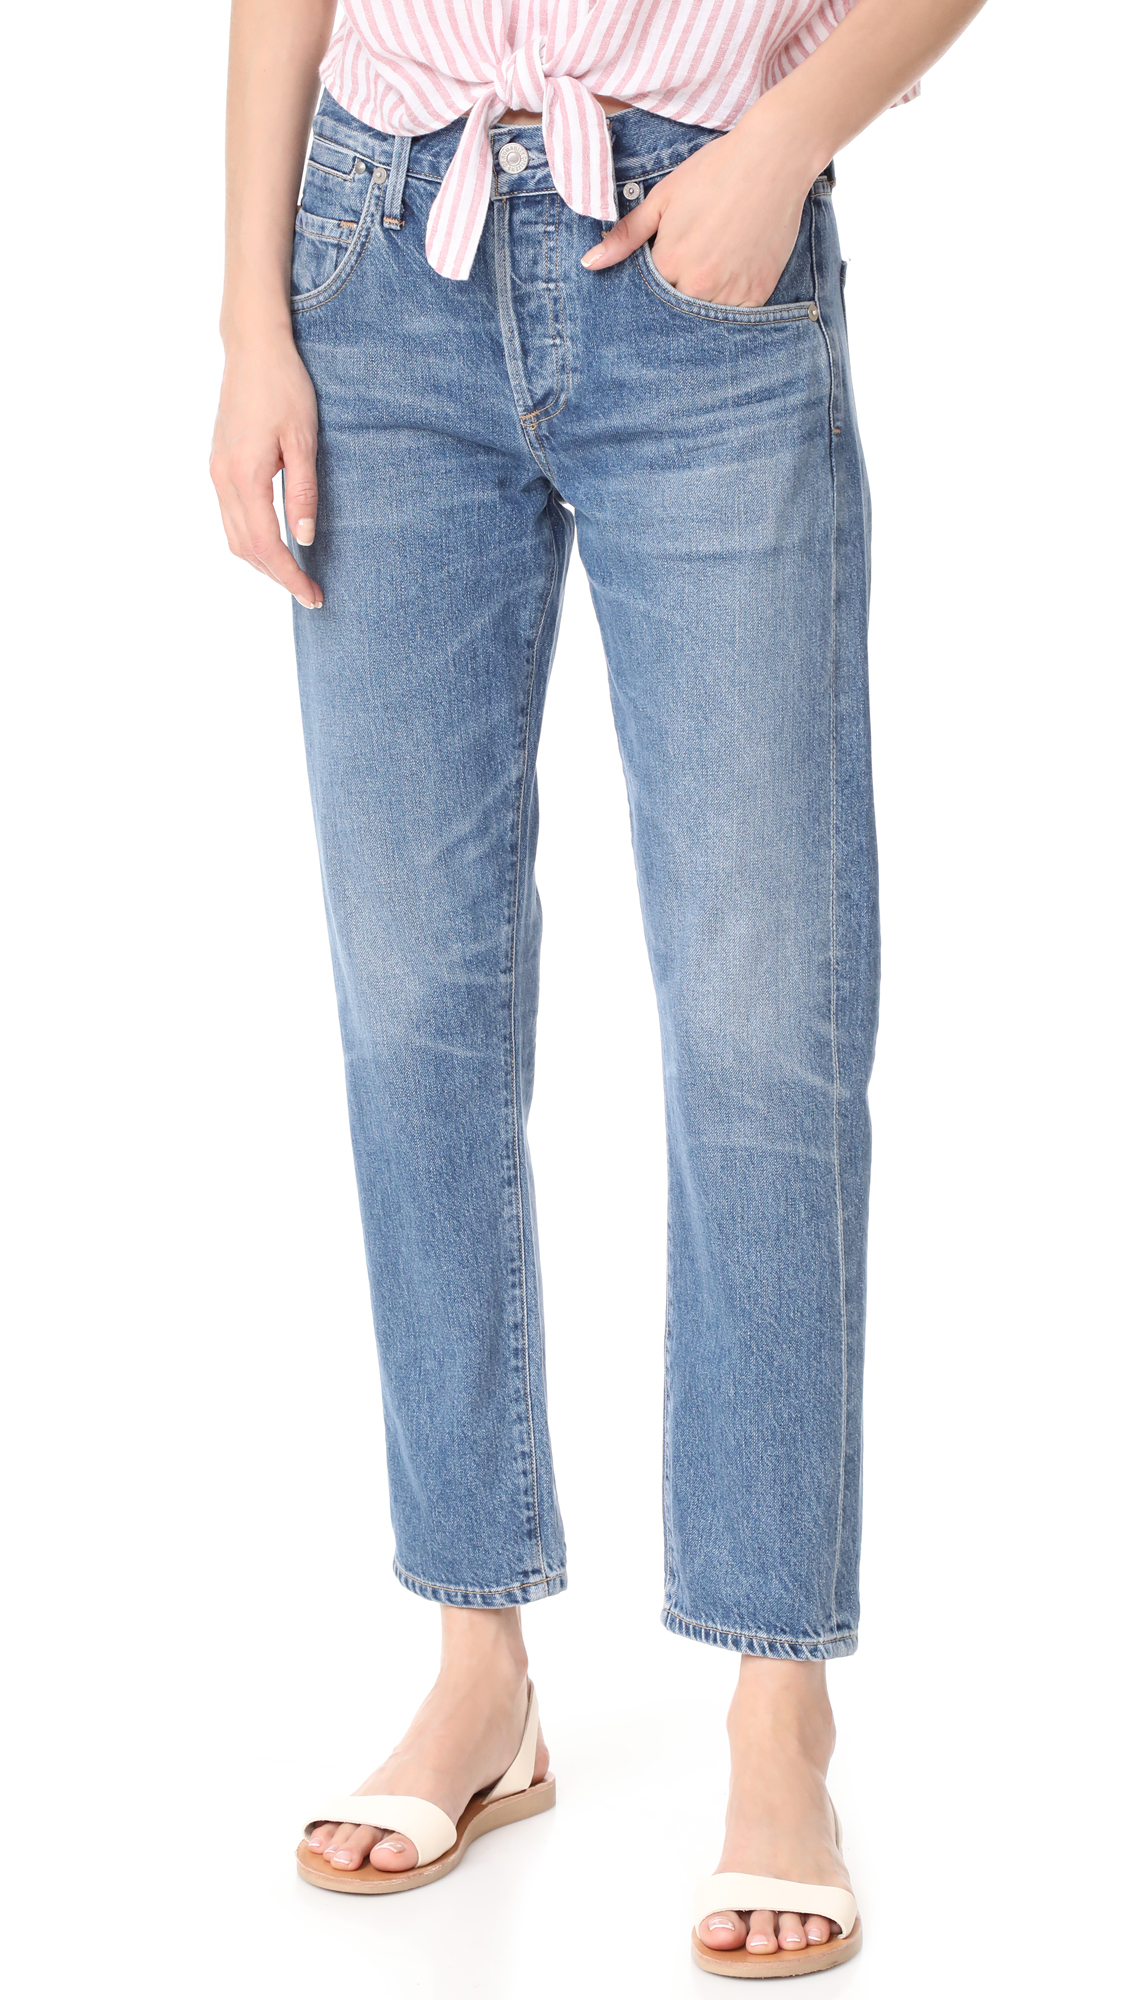 Citizens of Humanity Emerson Jeans - Admire